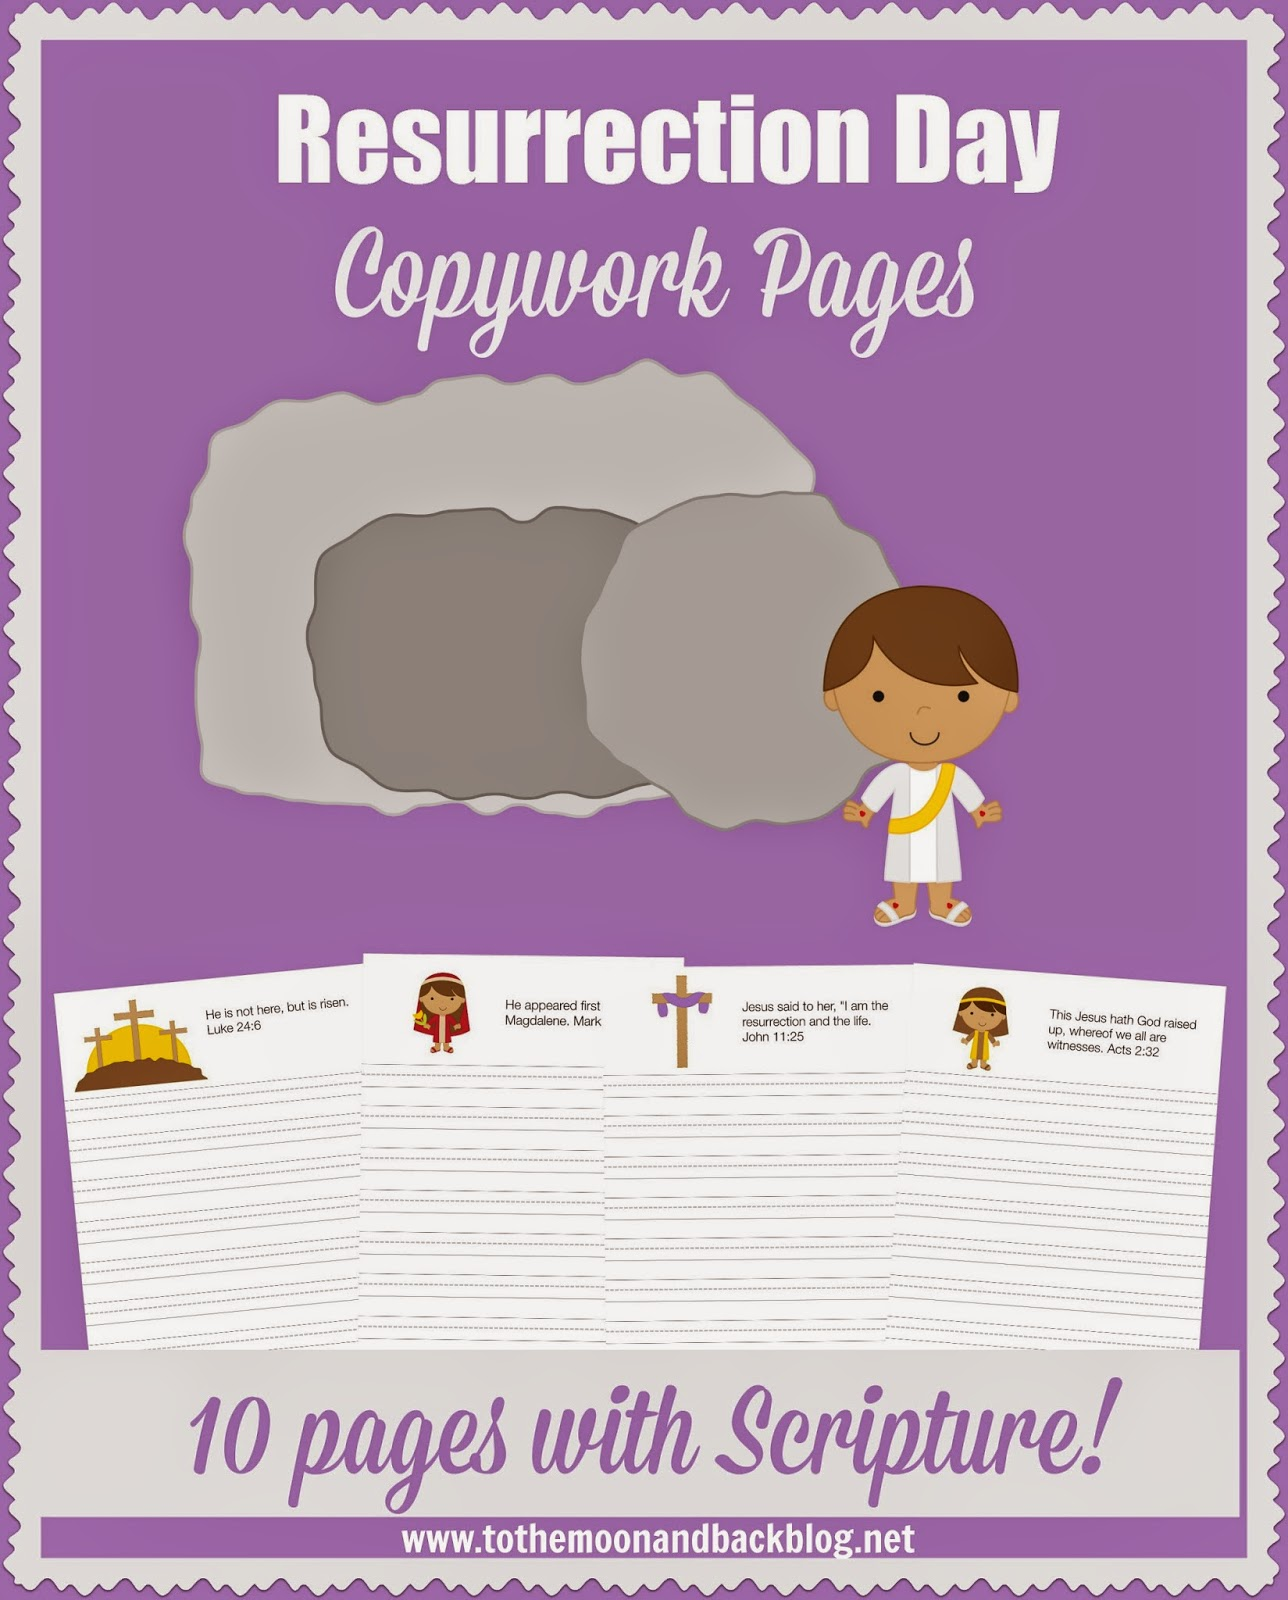 Free Resurrection Day Copywork Pages